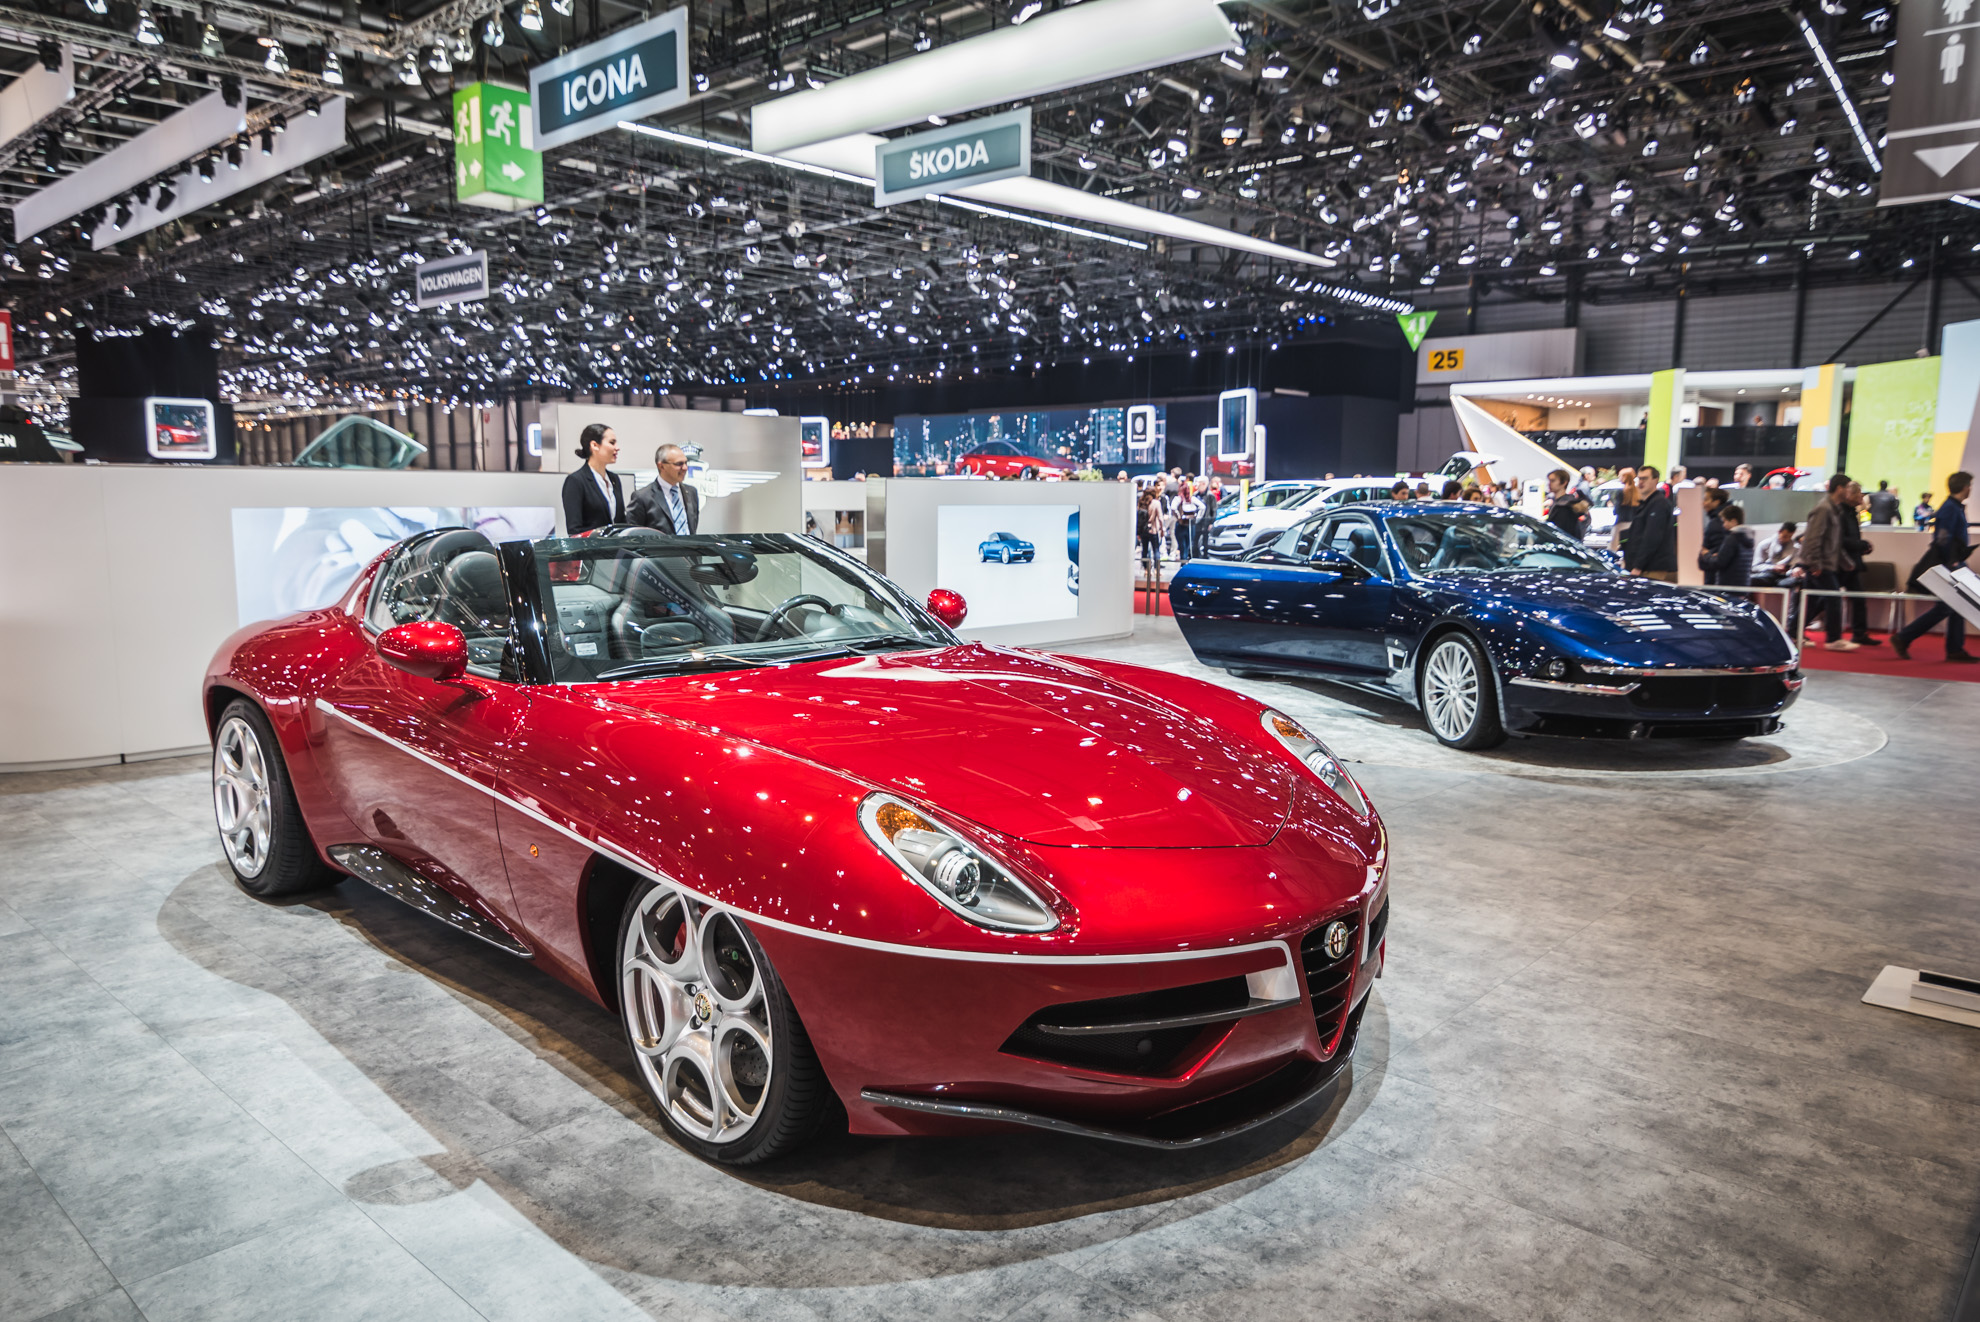 geneva-international-motor-show-igors-sinitsins-3